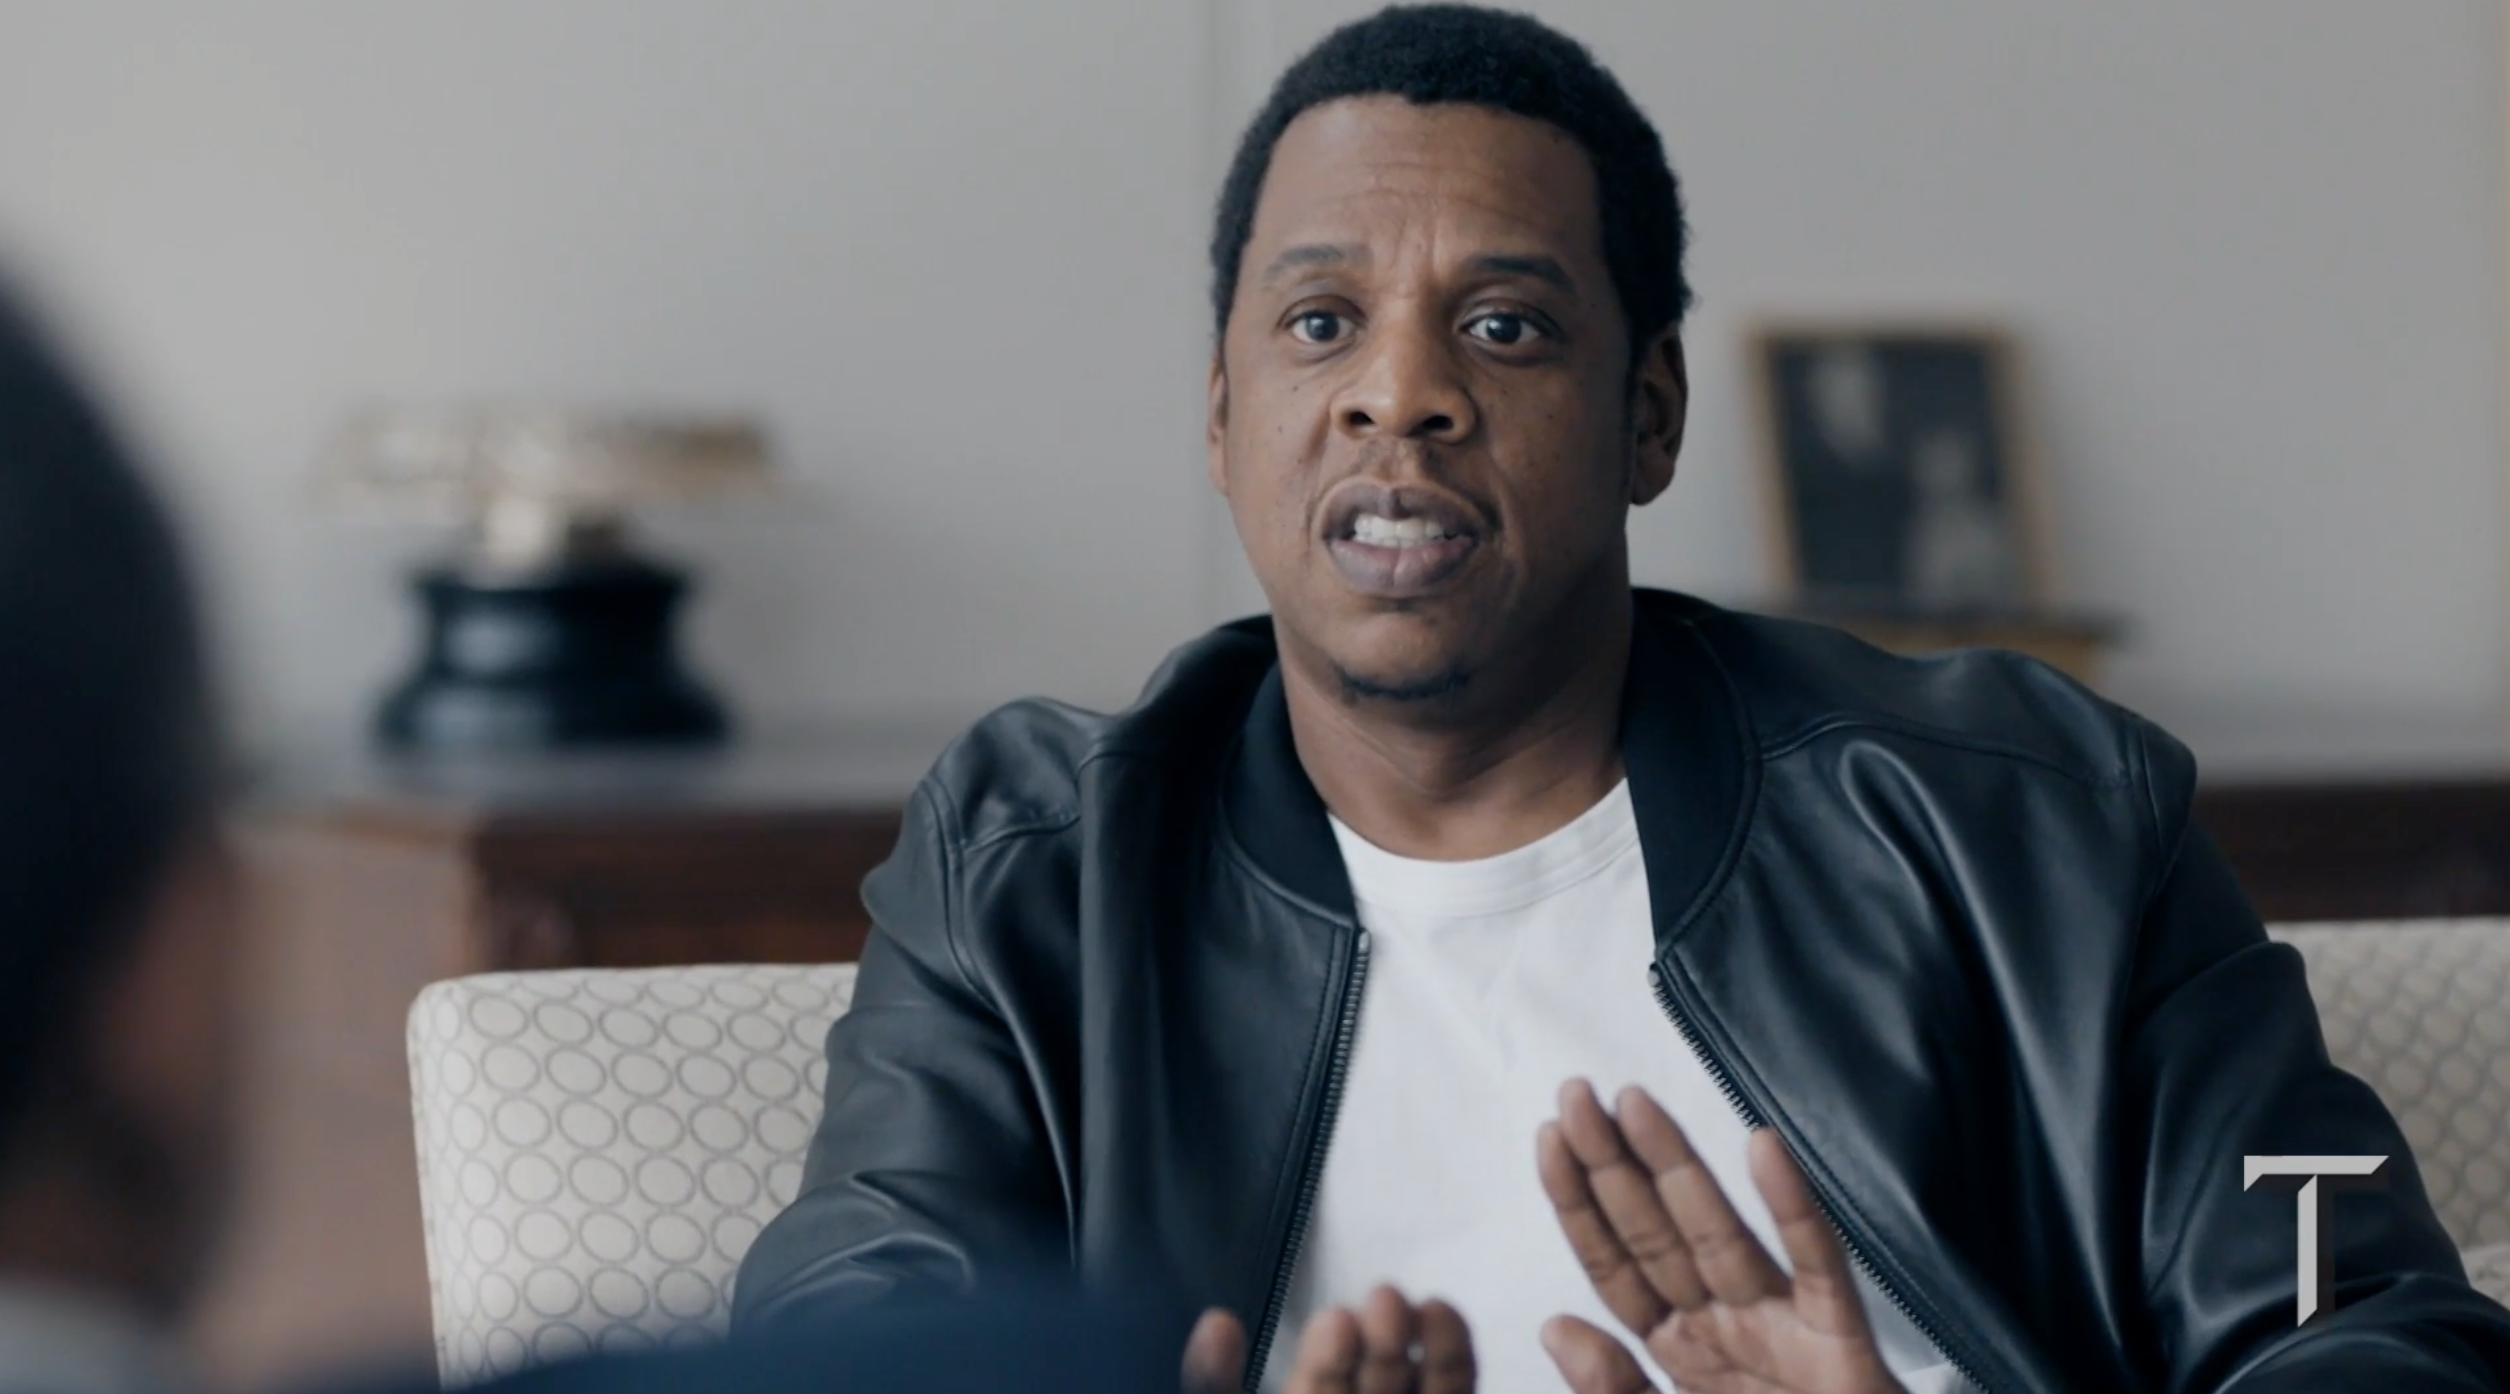 Jay-Z Discusses Rap, Marriage and Being a Black Man in Trump's America |  Interview style, Interview, Documentary filmmaking